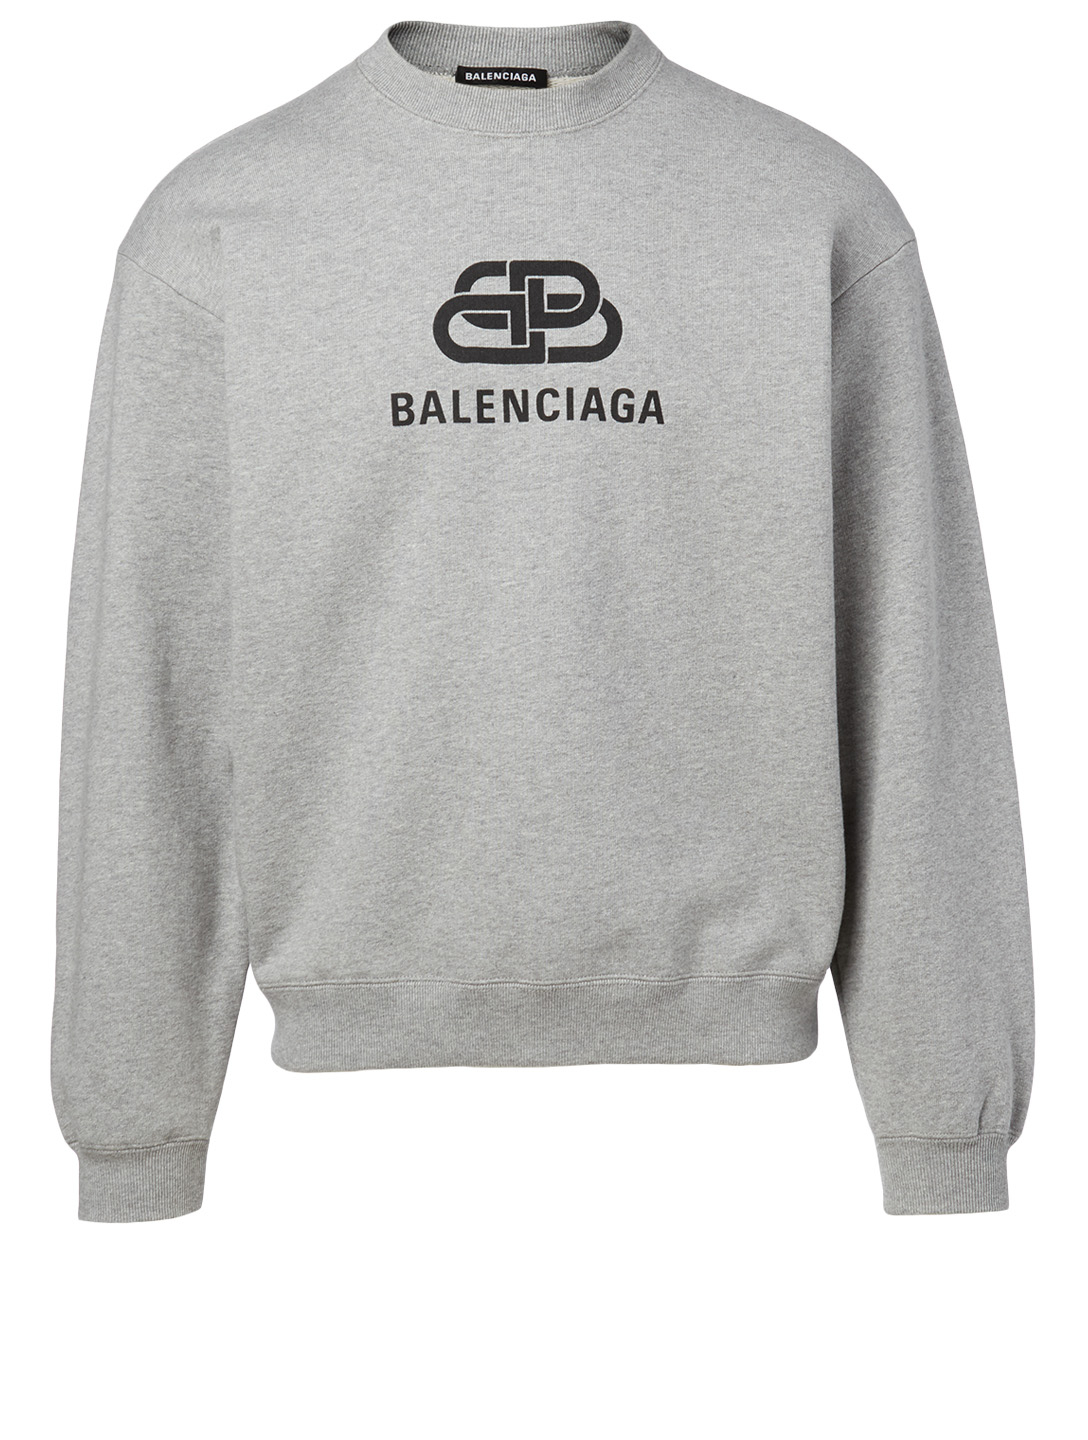 BALENCIAGA BB Cotton Sweatshirt Men's Grey